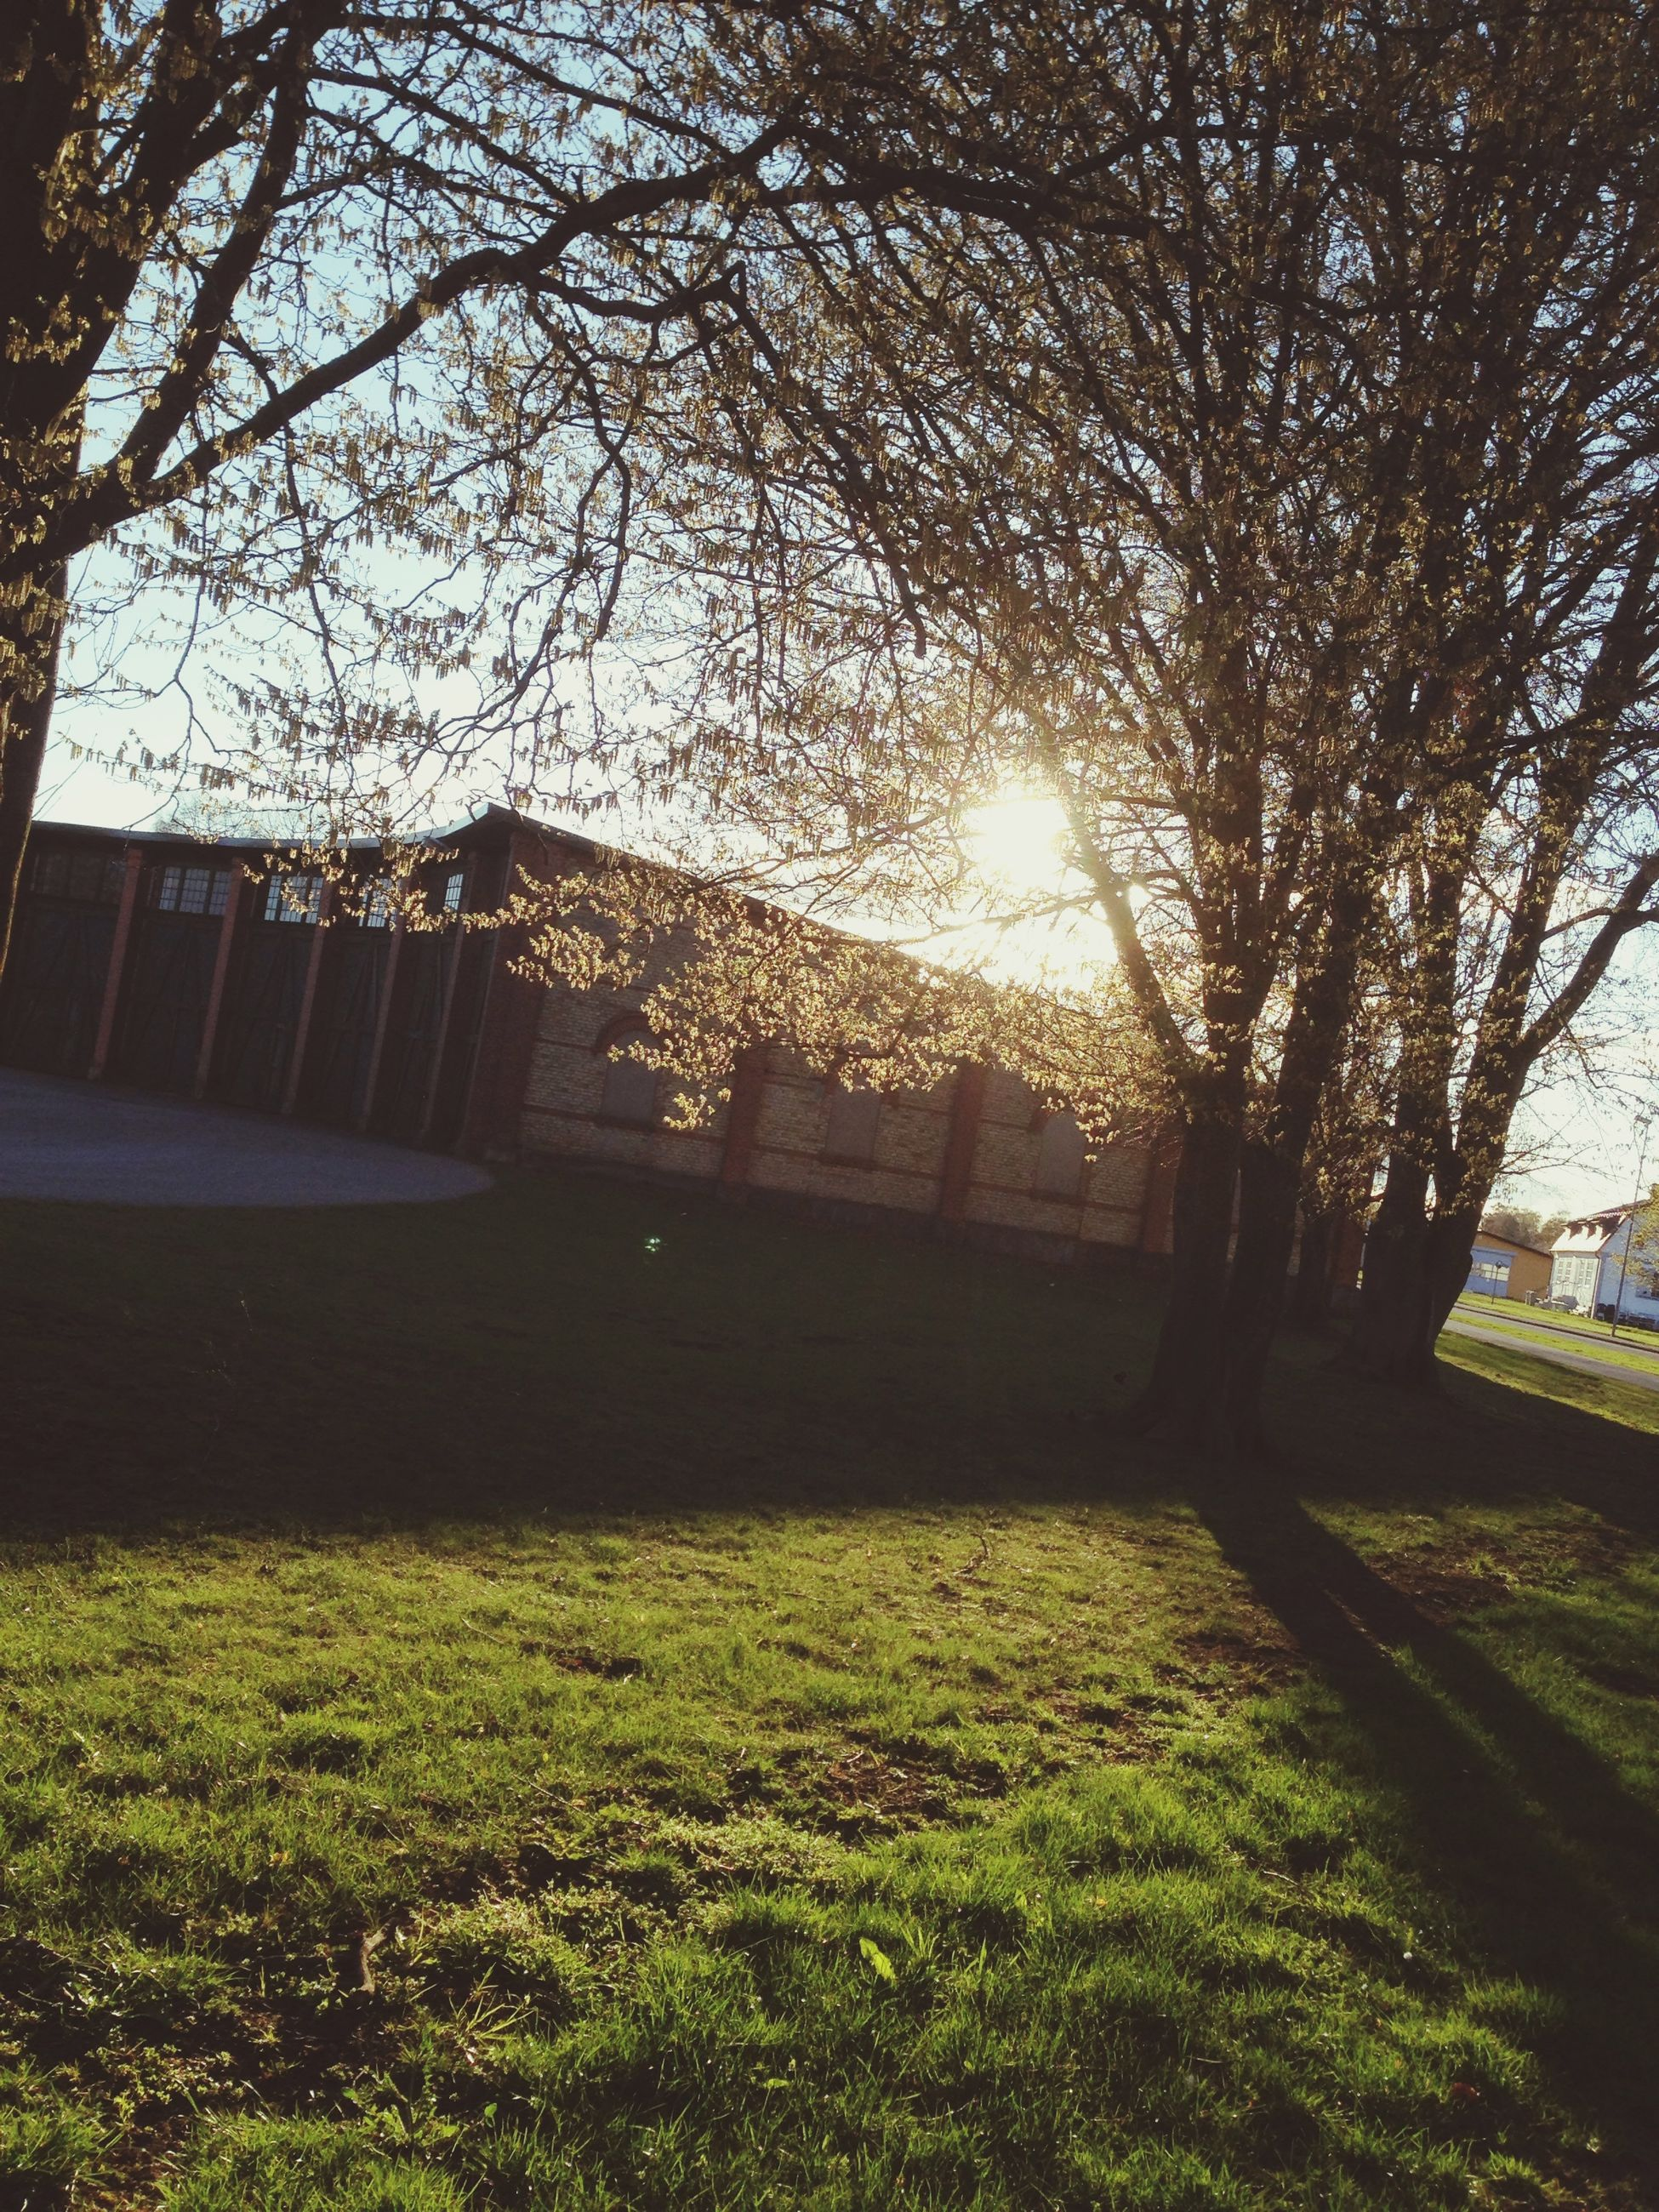 tree, grass, sun, sunlight, sunbeam, branch, growth, park - man made space, lens flare, built structure, tranquility, nature, architecture, sky, building exterior, field, lawn, shadow, beauty in nature, tranquil scene